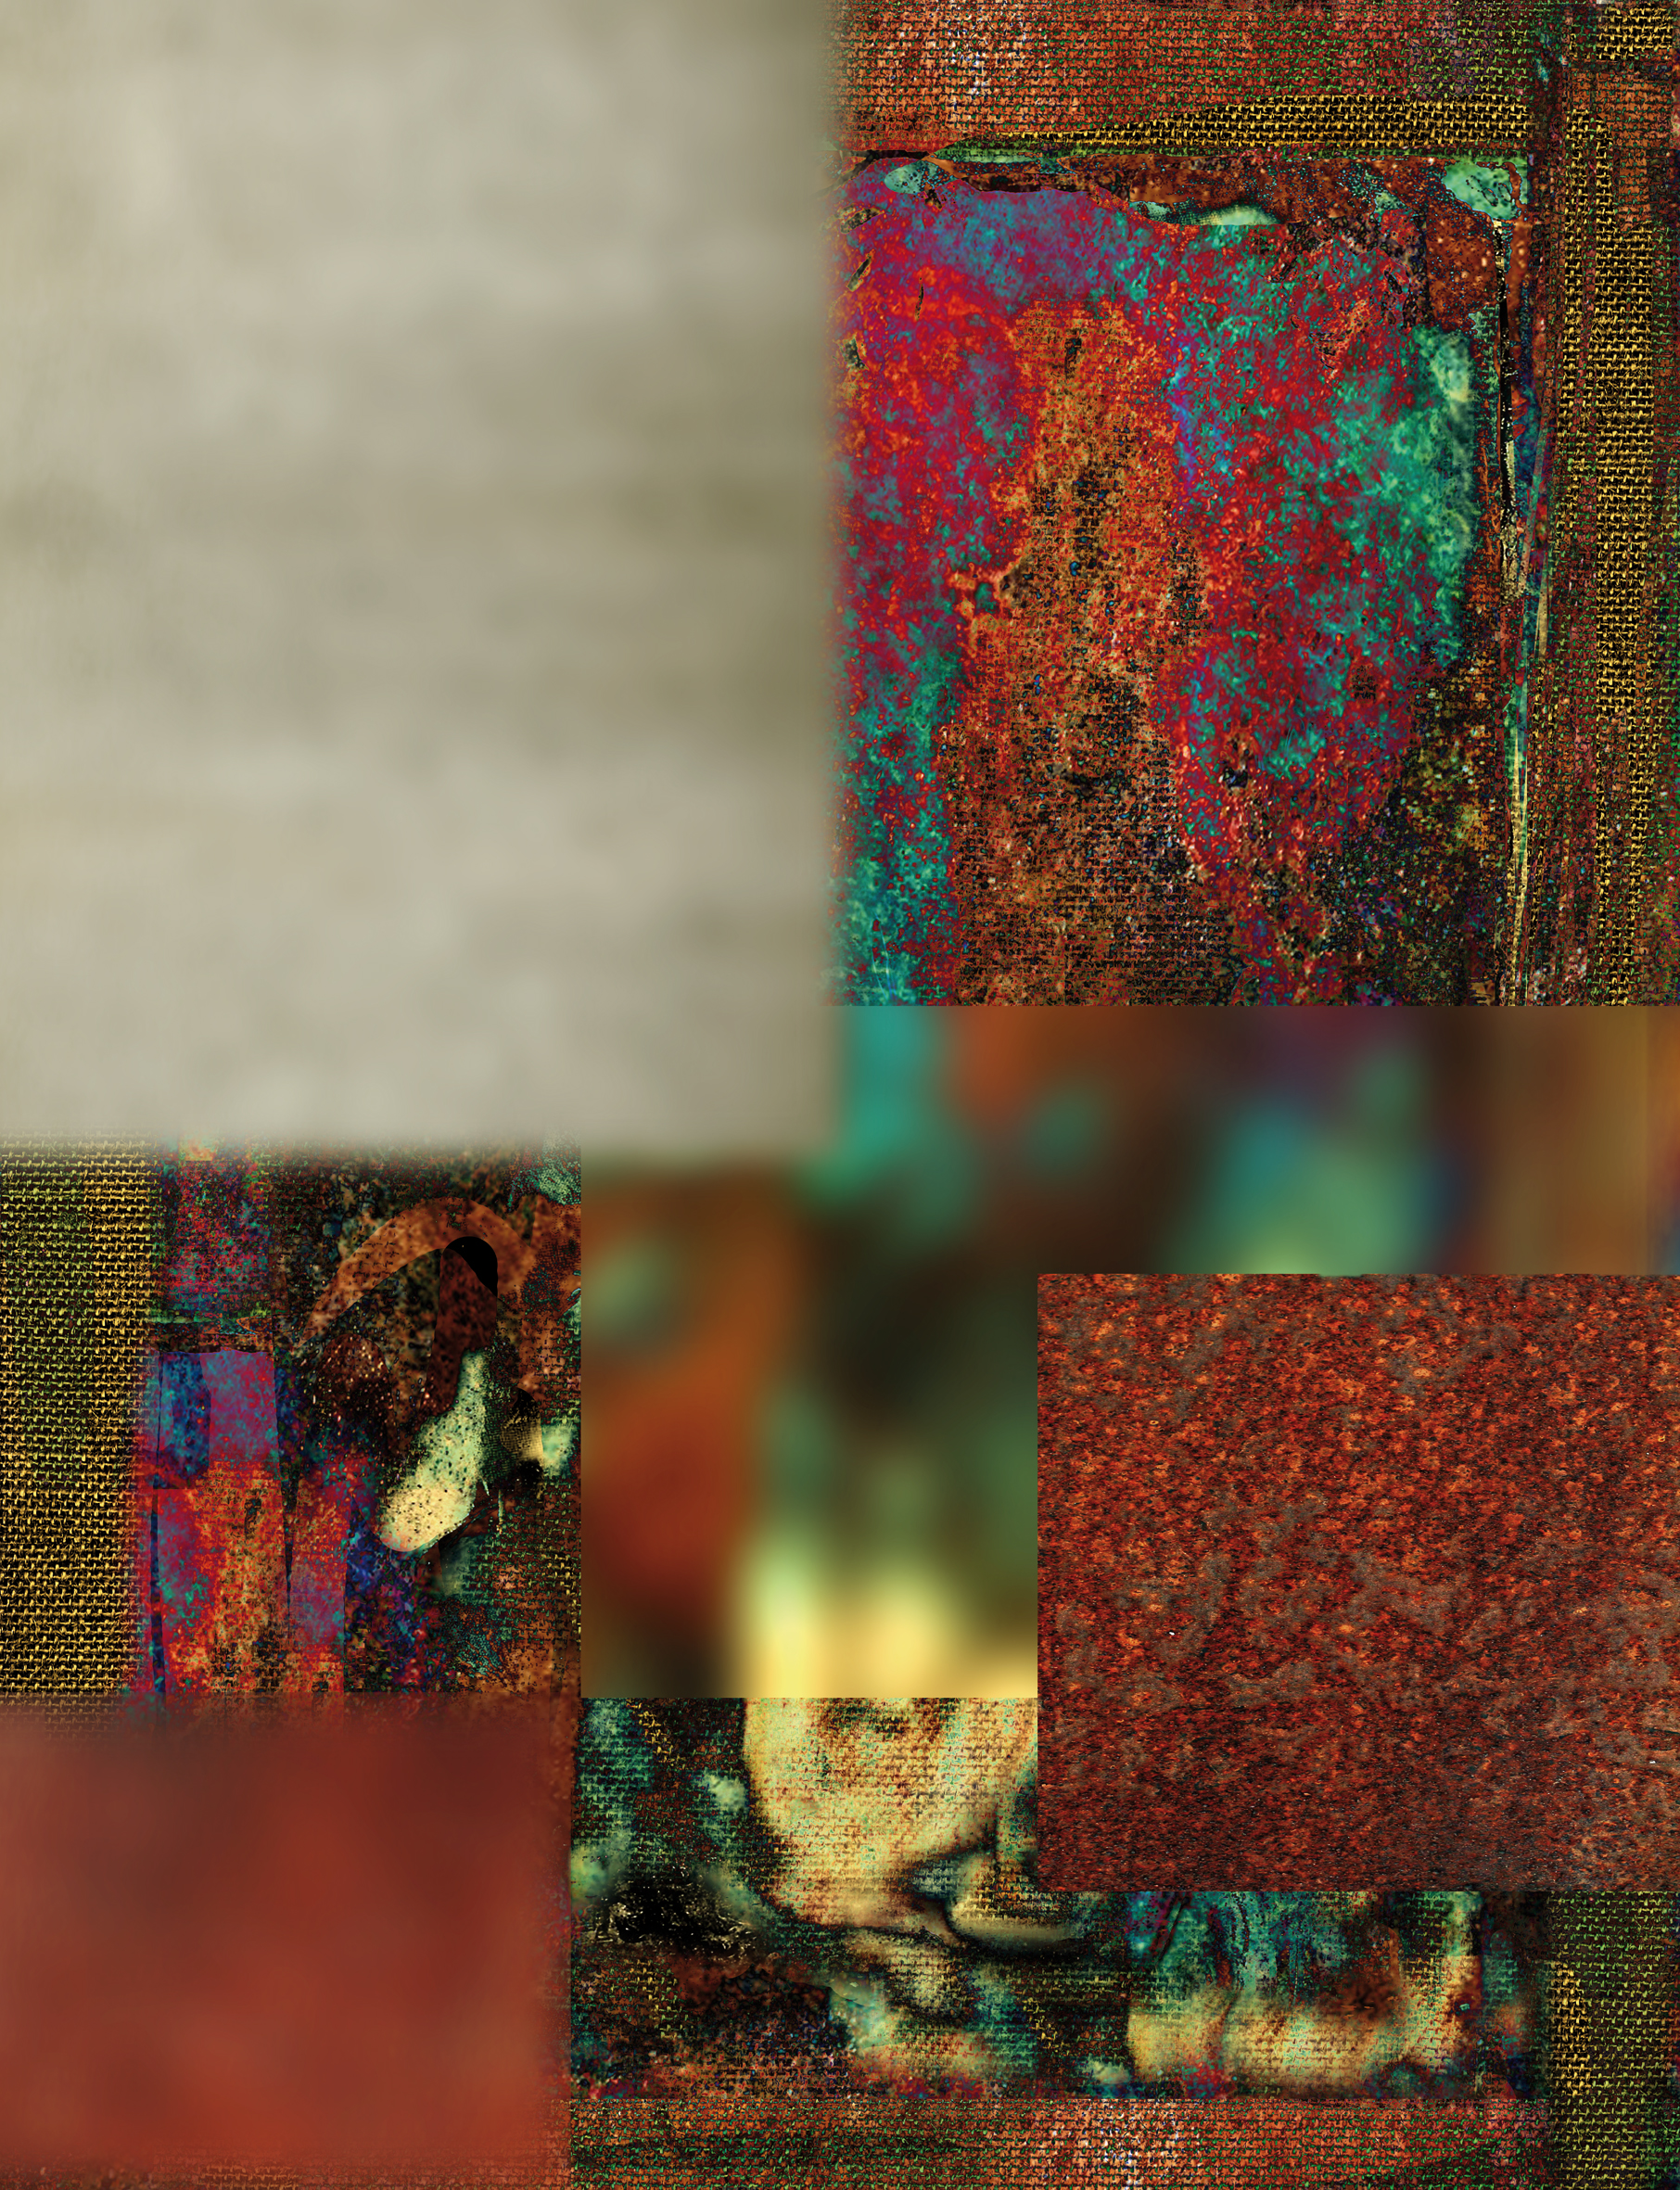 Markus Selg    Data Dream I , 2014  Sublimation print on canvas  81.875 x 61.75 inches